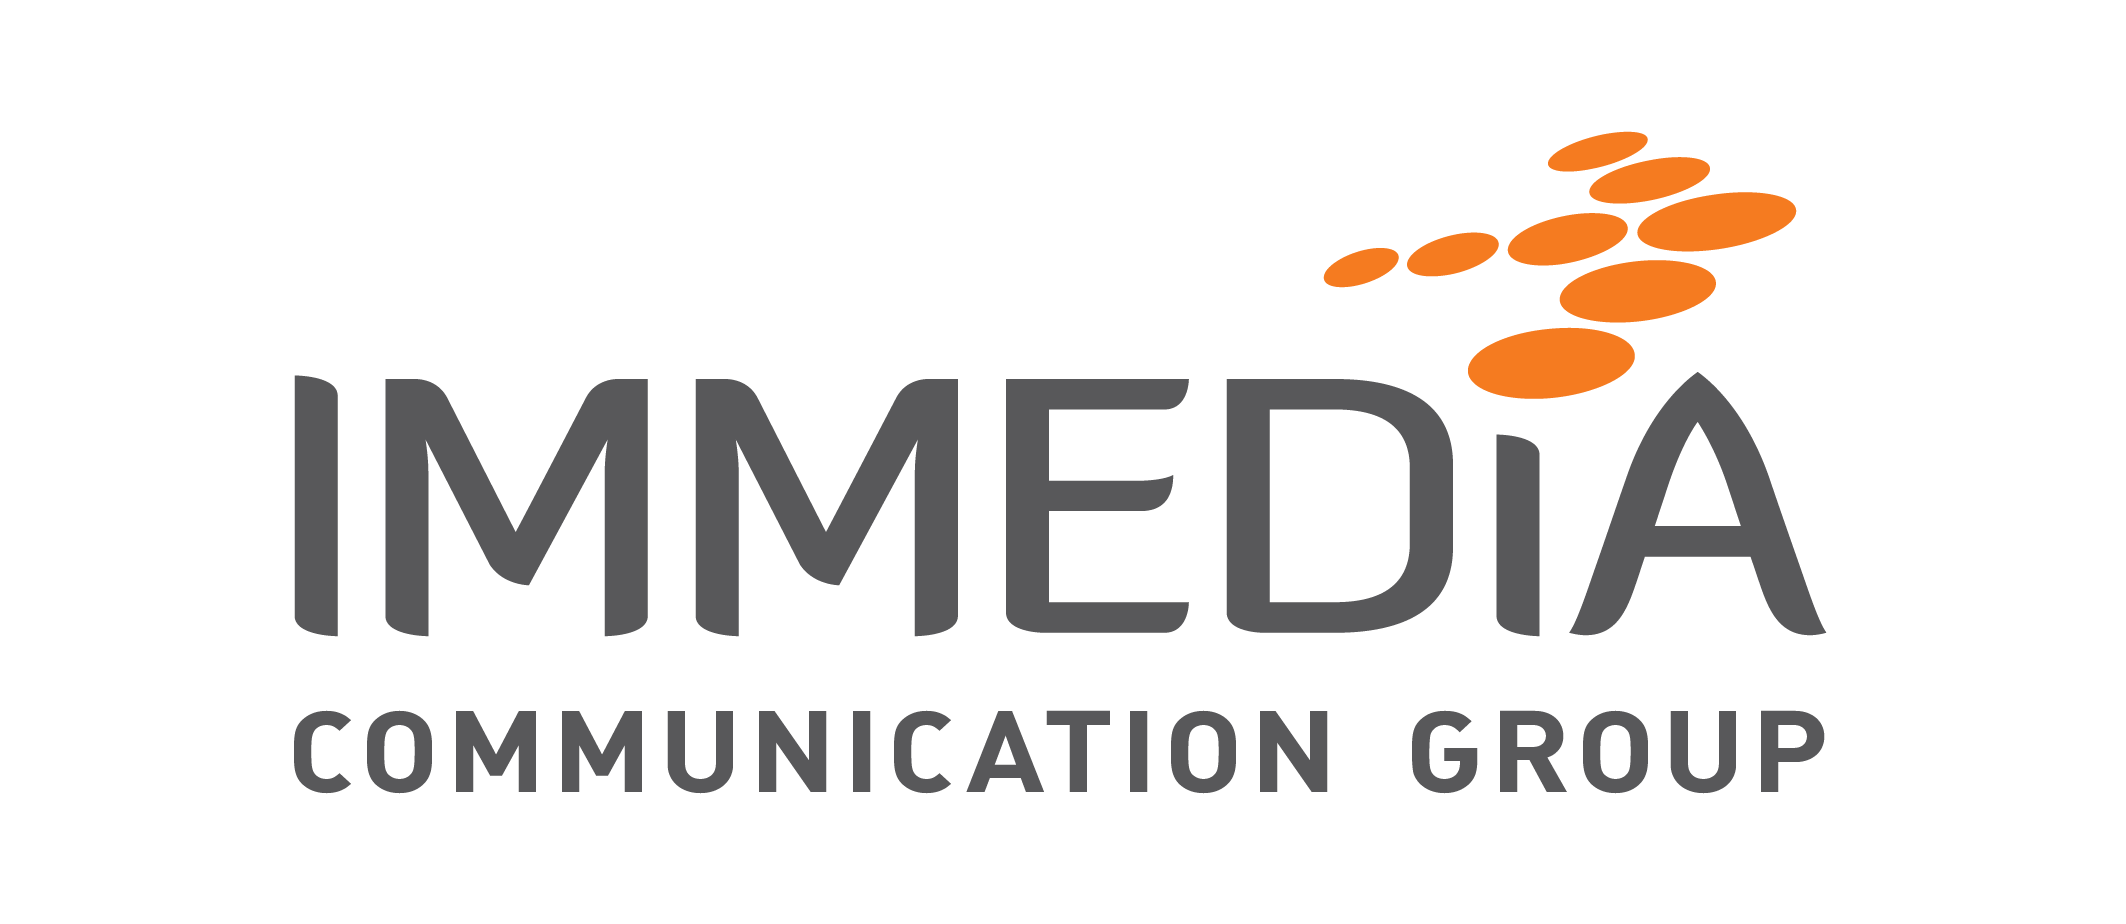 Immedia Communication Group